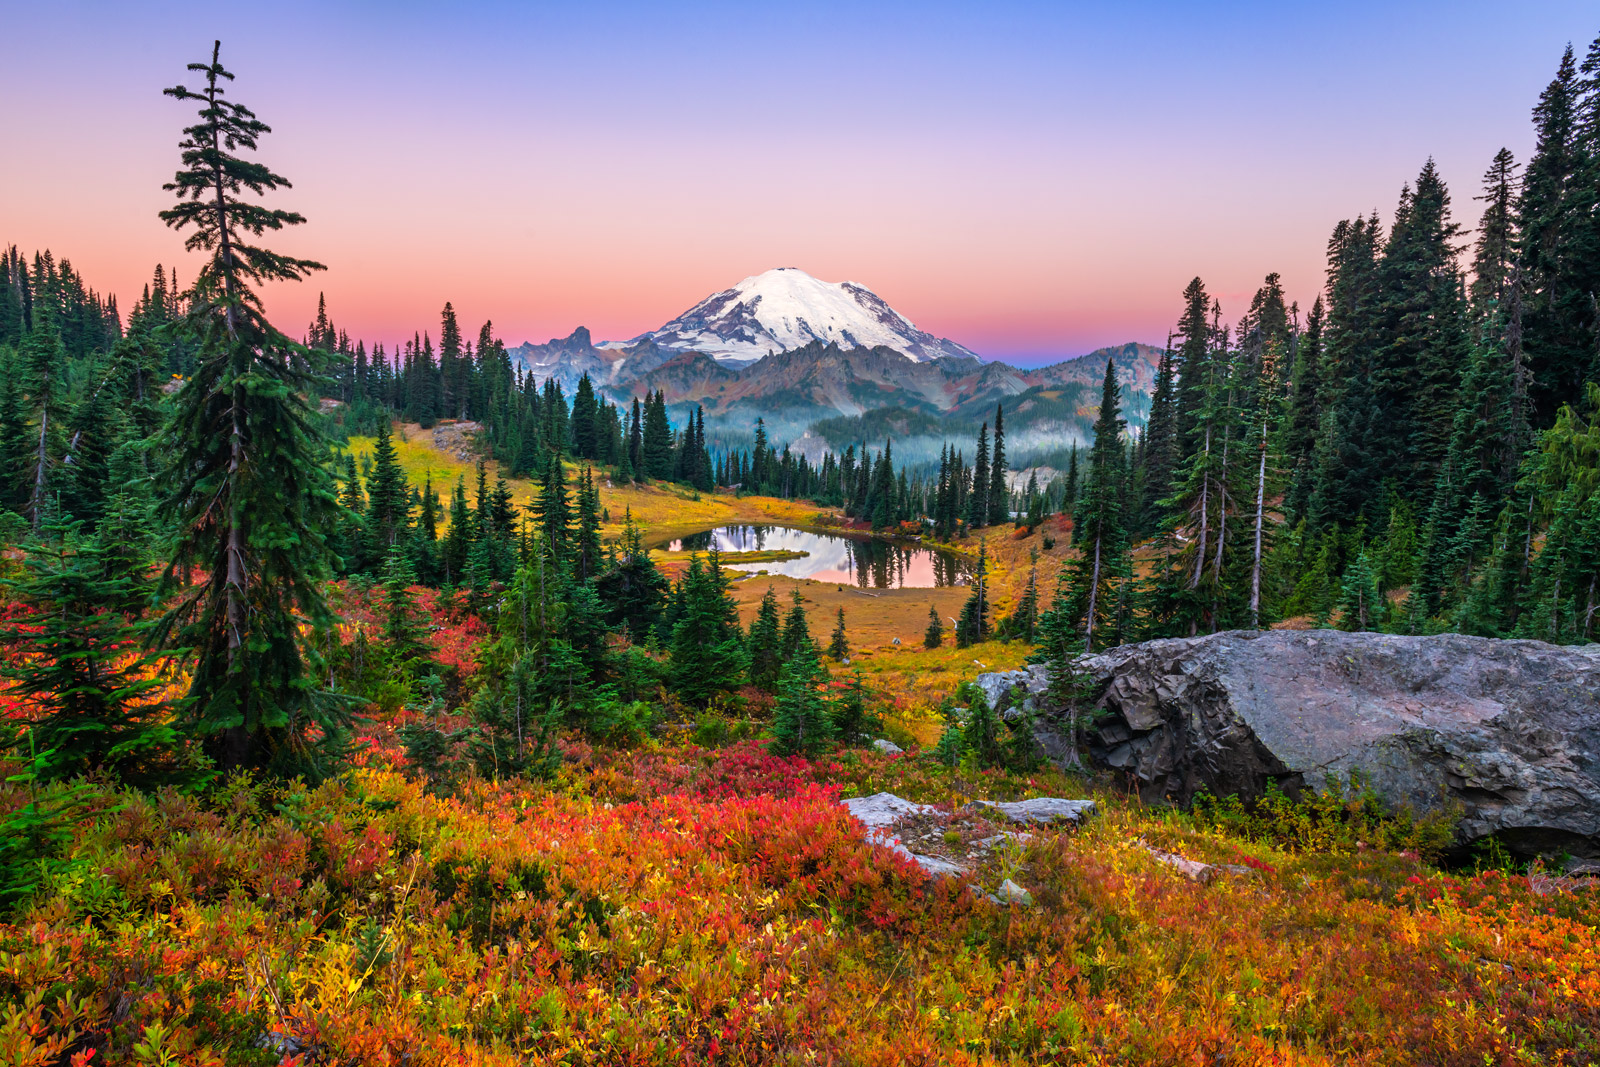 A Limited Edition, Fine Art photograph of early morning at Tipsoo Lake with fall color in front of Mount Rainier in Washington...